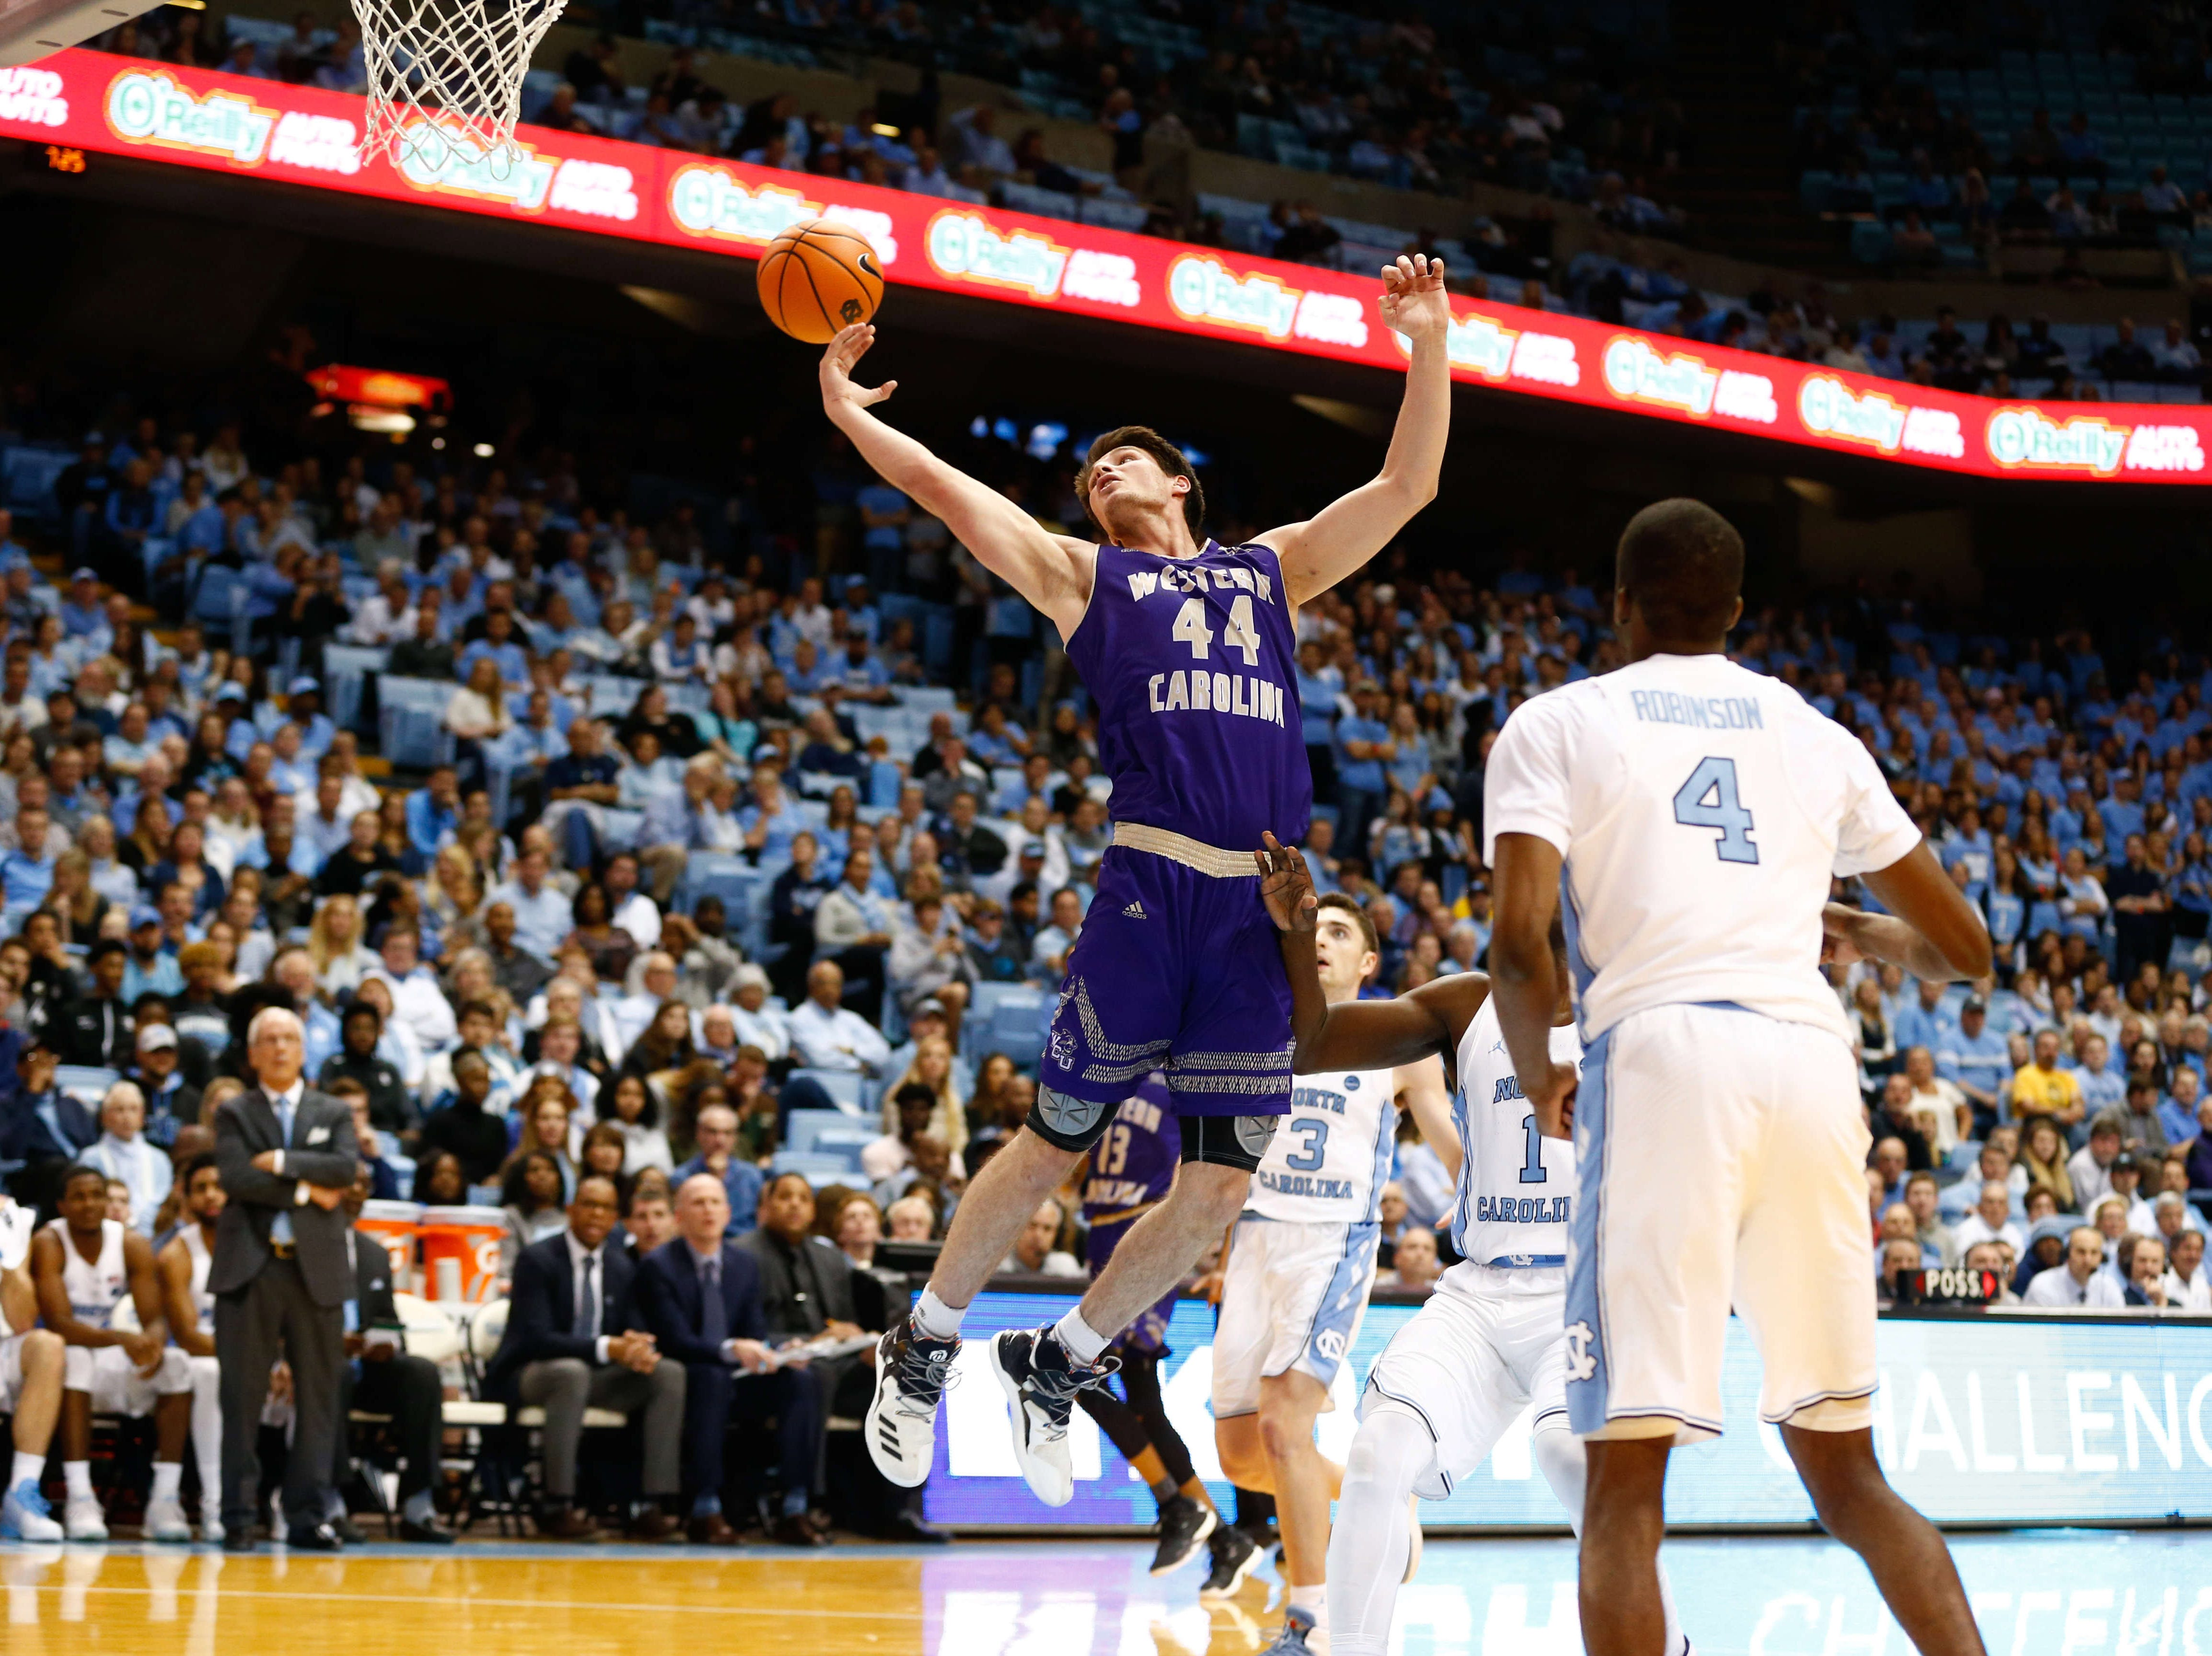 Dec 6, 2017; Chapel Hill, NC, USA; Western Carolina Catamounts forward Adam Sledd (44) tries to save an overthrown pass in the first half against the North Carolina Tar Heels at Dean E. Smith Center. Mandatory Credit: Jeremy Brevard-USA TODAY Sports